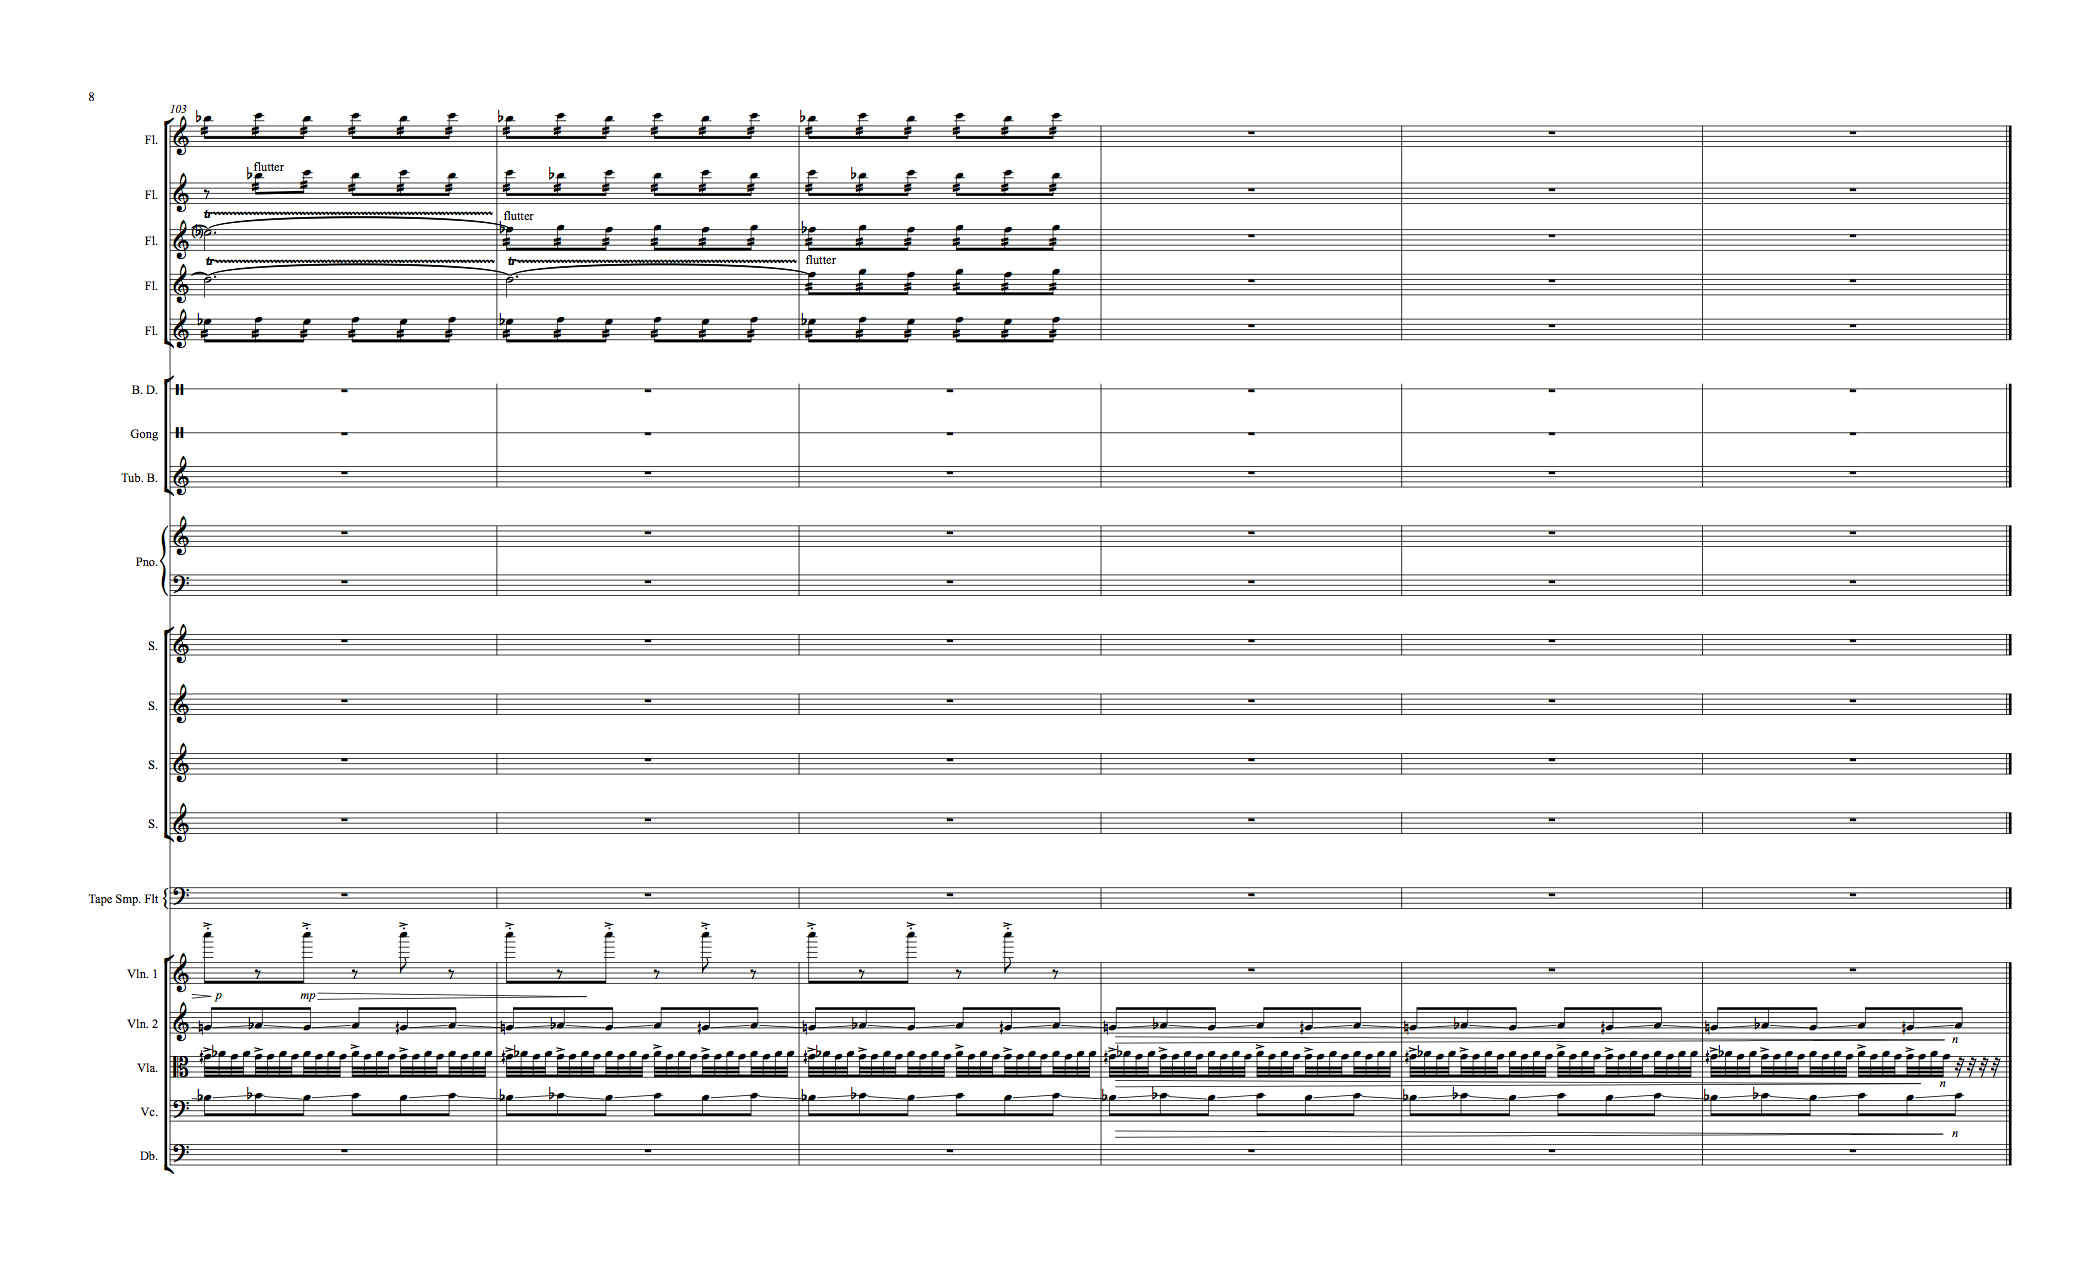 Automatic_heart_distort_final_3_25 - score and parts_8.jpg